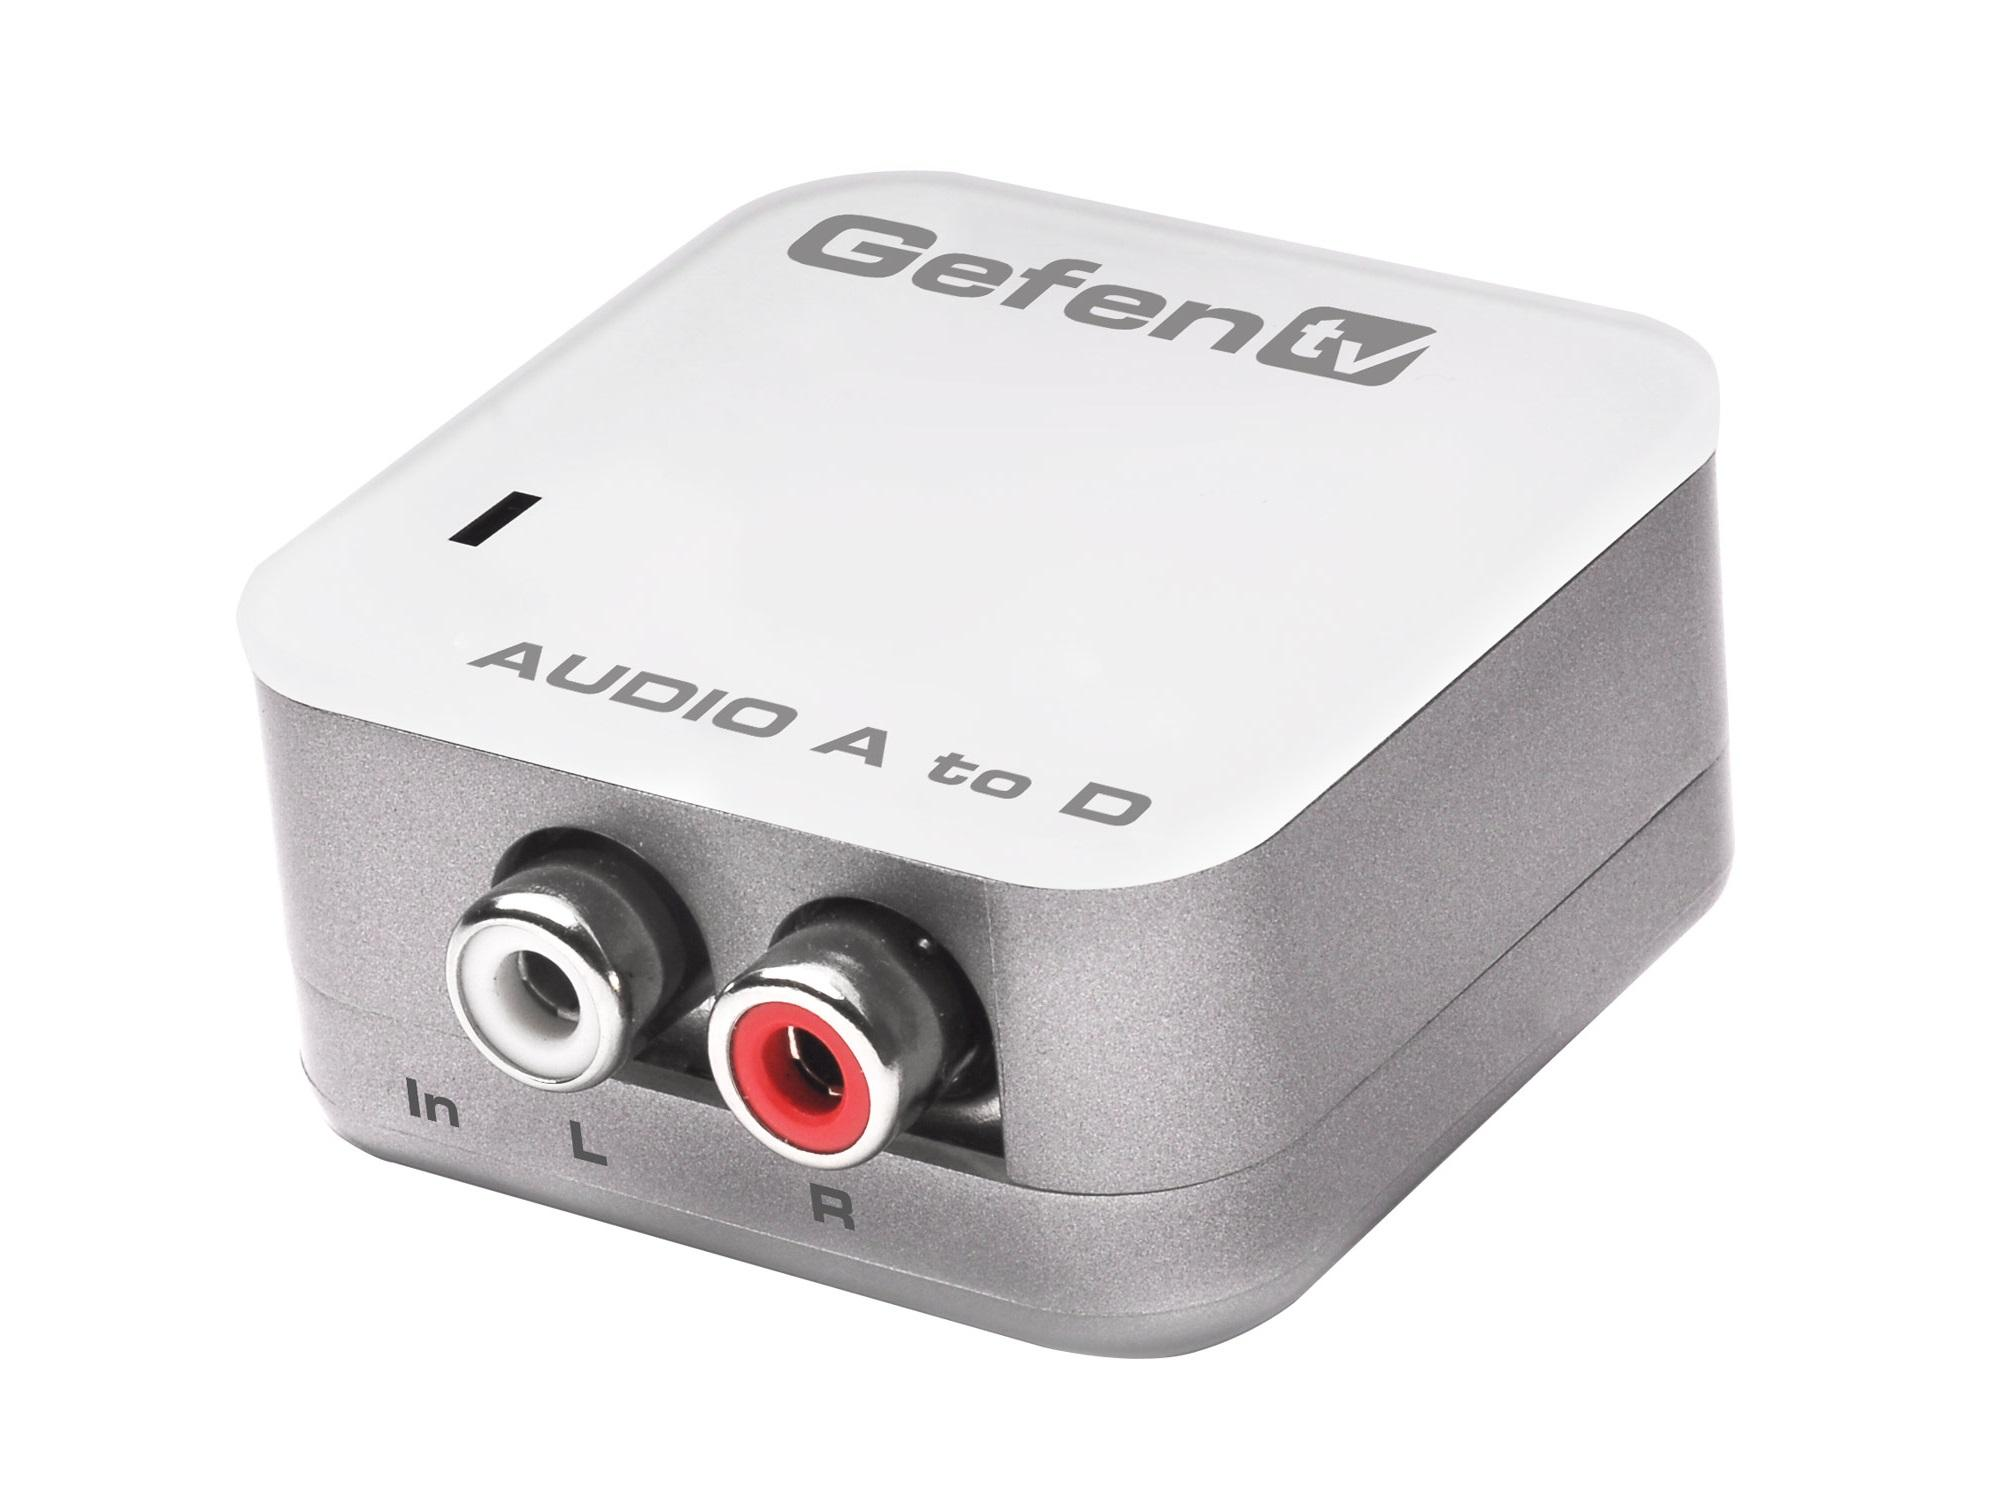 GTV-AAUD-2-DIGAUD Analog Audio to Digital Audio Converter/Pre-Order by Gefen